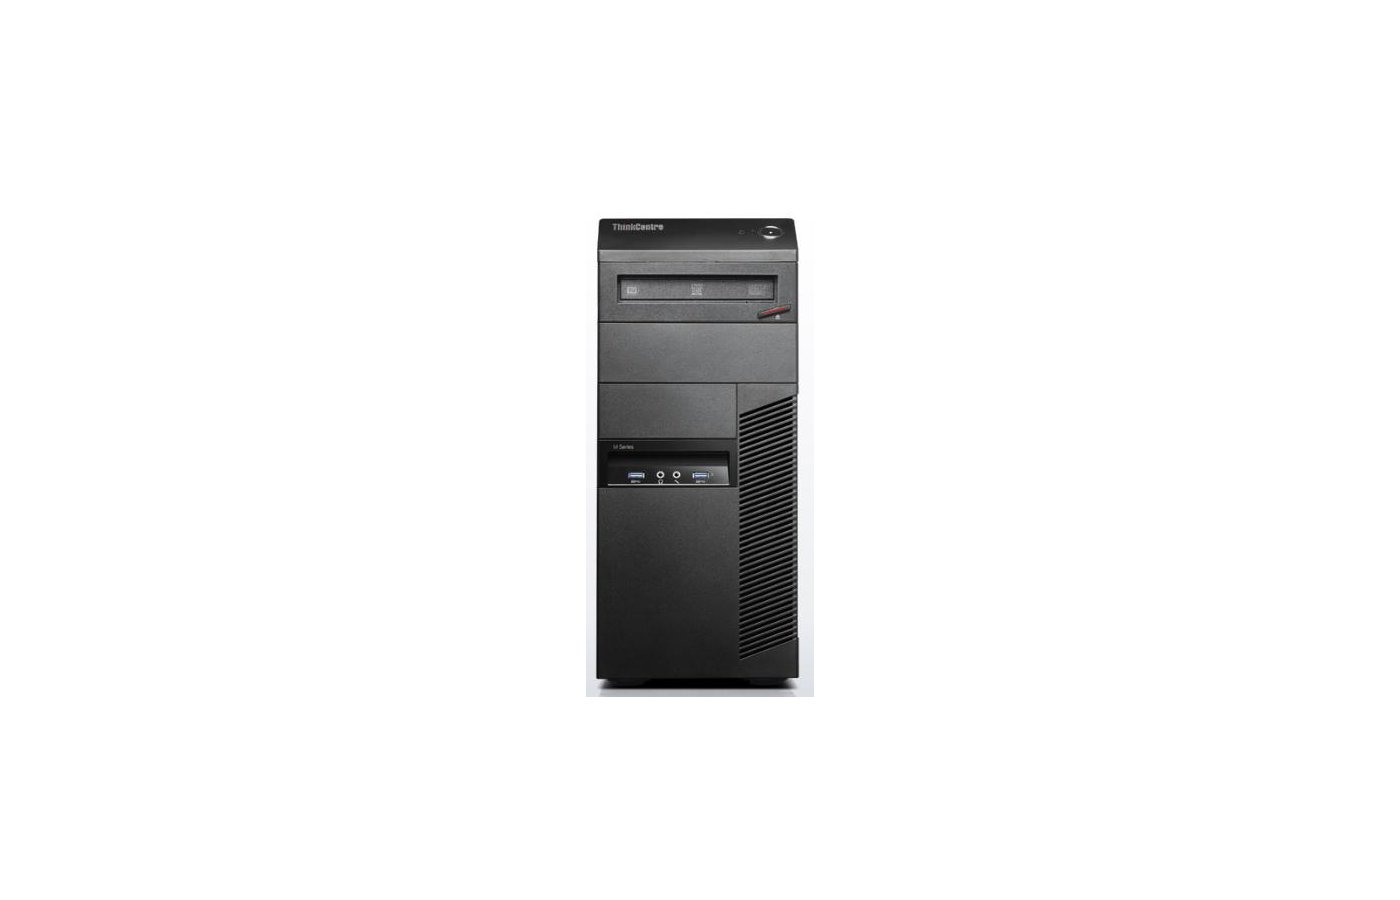 Системный блок Lenovo ThinkCentre M83 TW /10AKA07LRU/